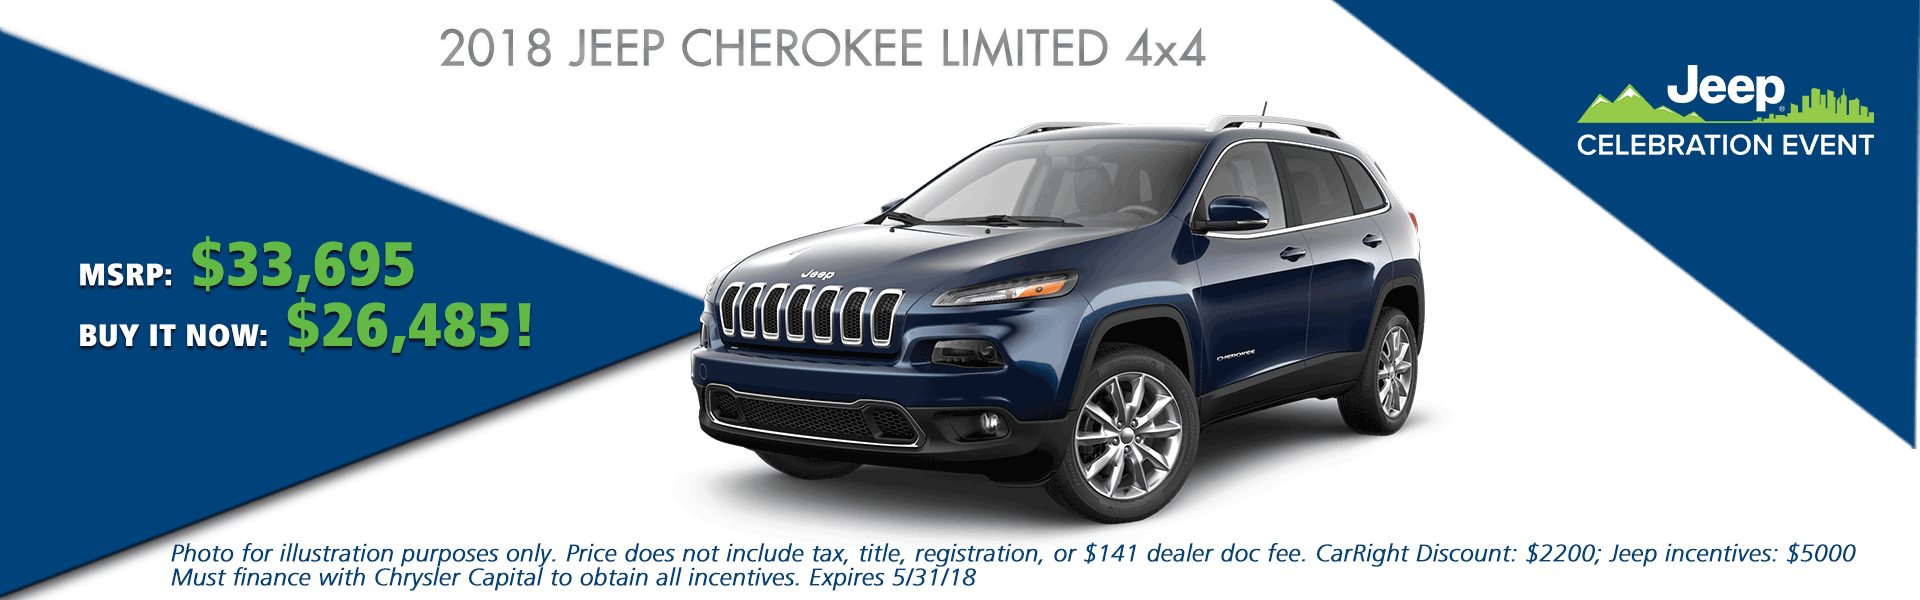 NEW 2018 JEEP CHEROKEE LIMITED 4X4 CarRight Chrysler Jeep Dodge Ram Fuso moon, pittsburgh, sewickley, pennsylvania.